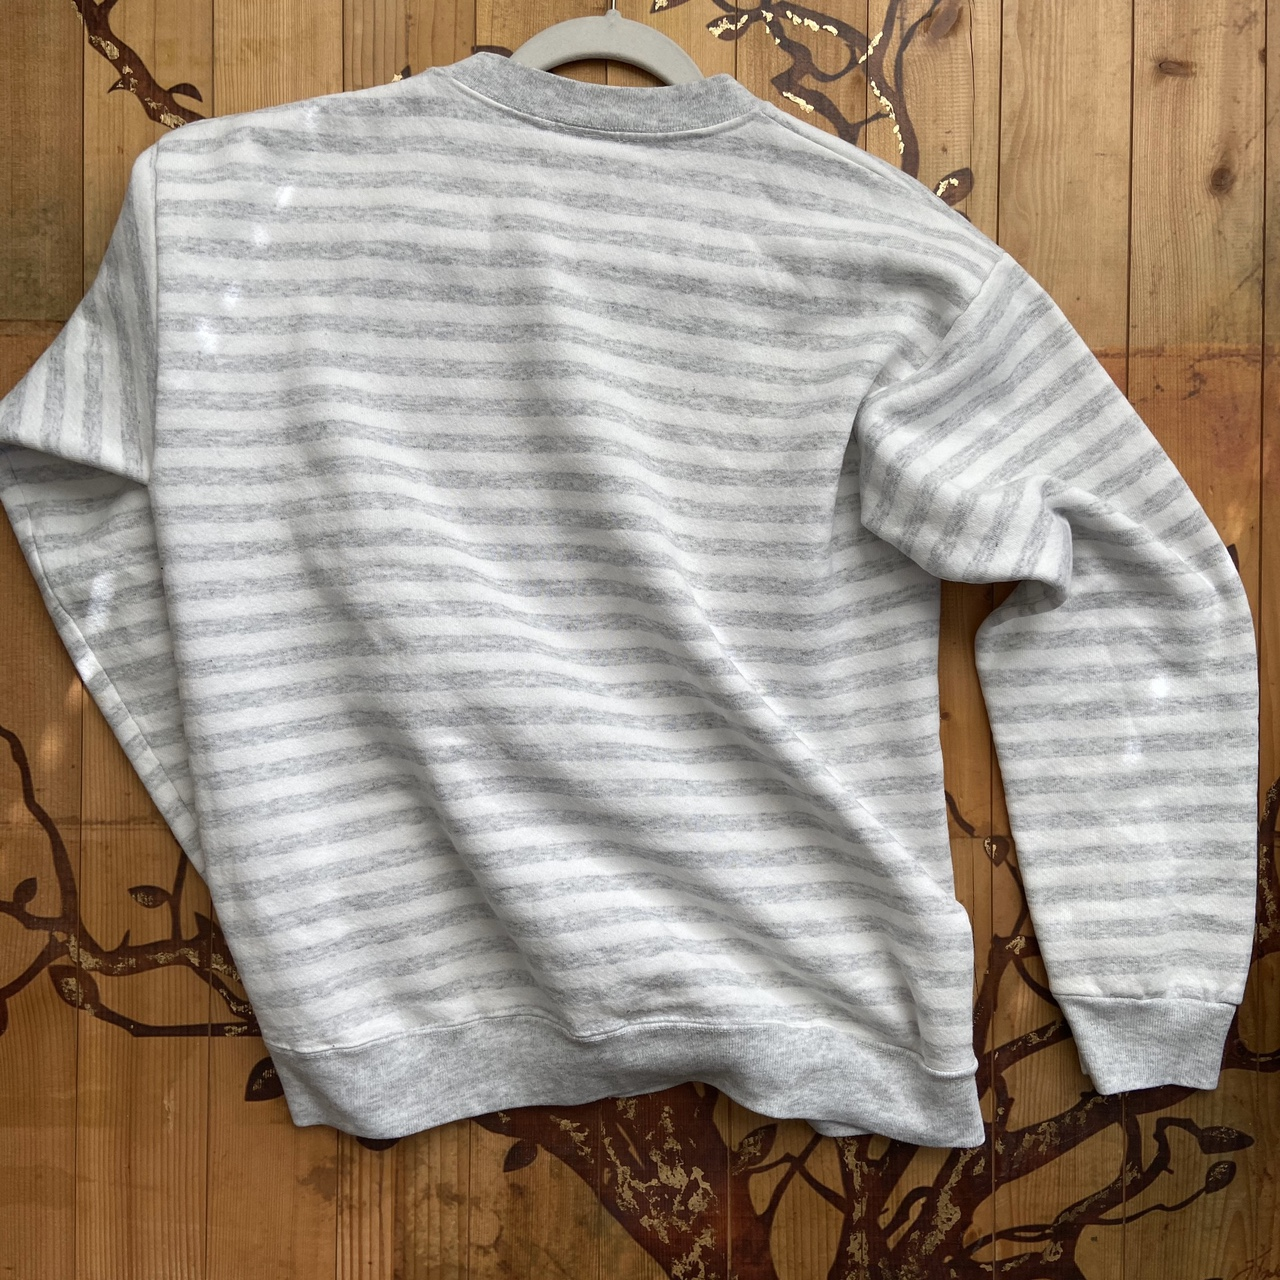 Product Image 4 - Vintage guess sweatshirt White striped design